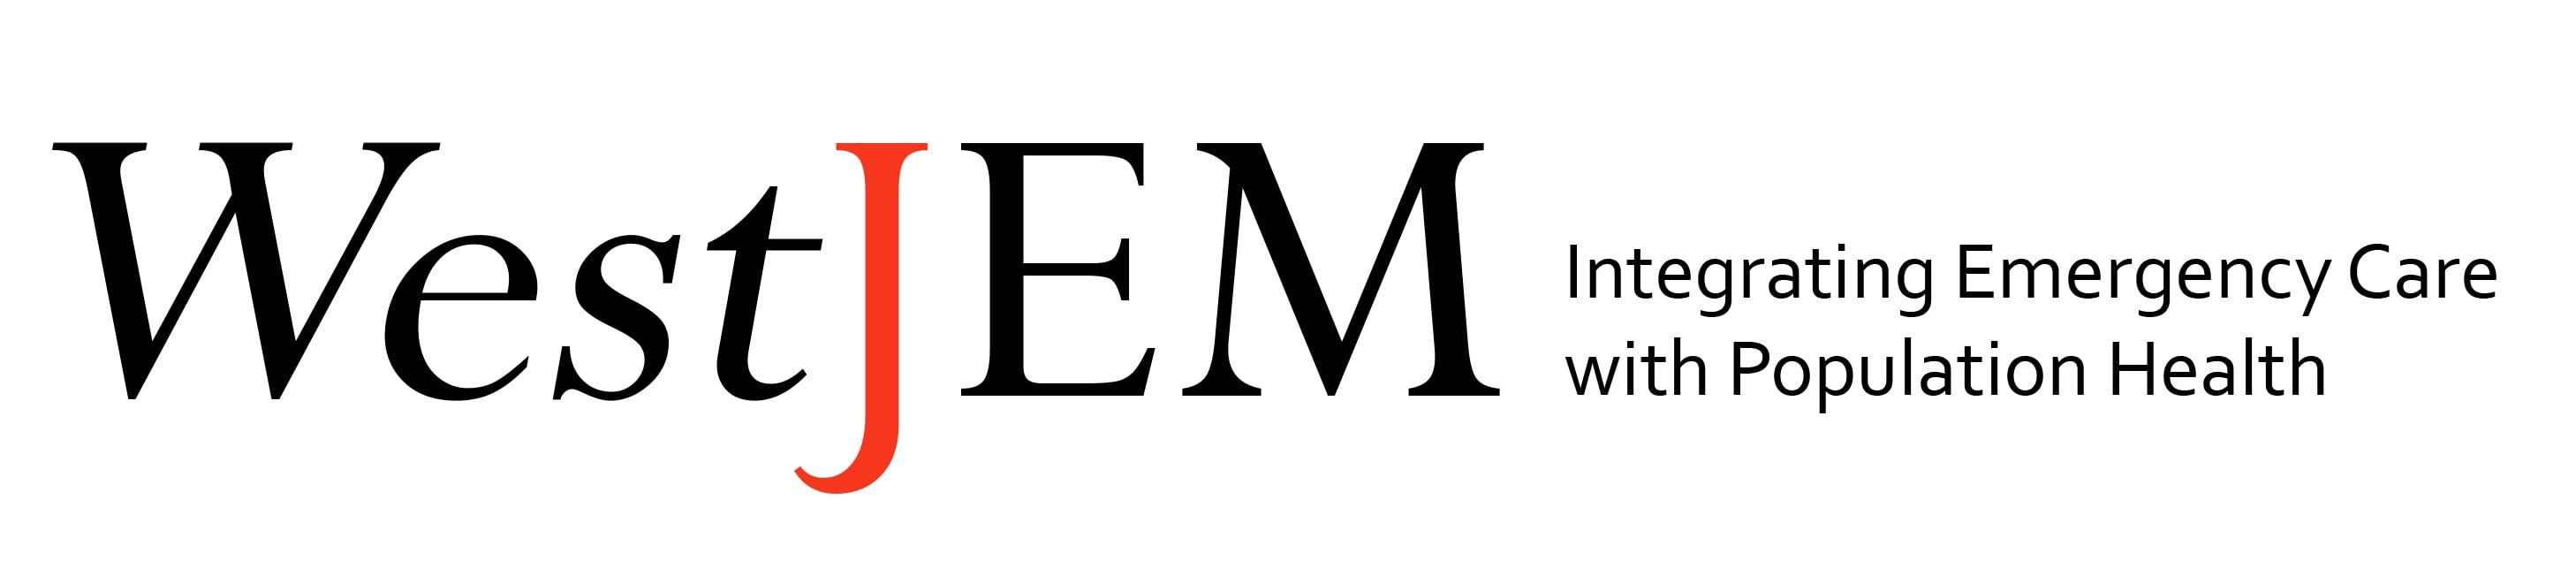 CPC-EM: Volume 2 Issue 3 Archives - The Western Journal of Emergency Medicine